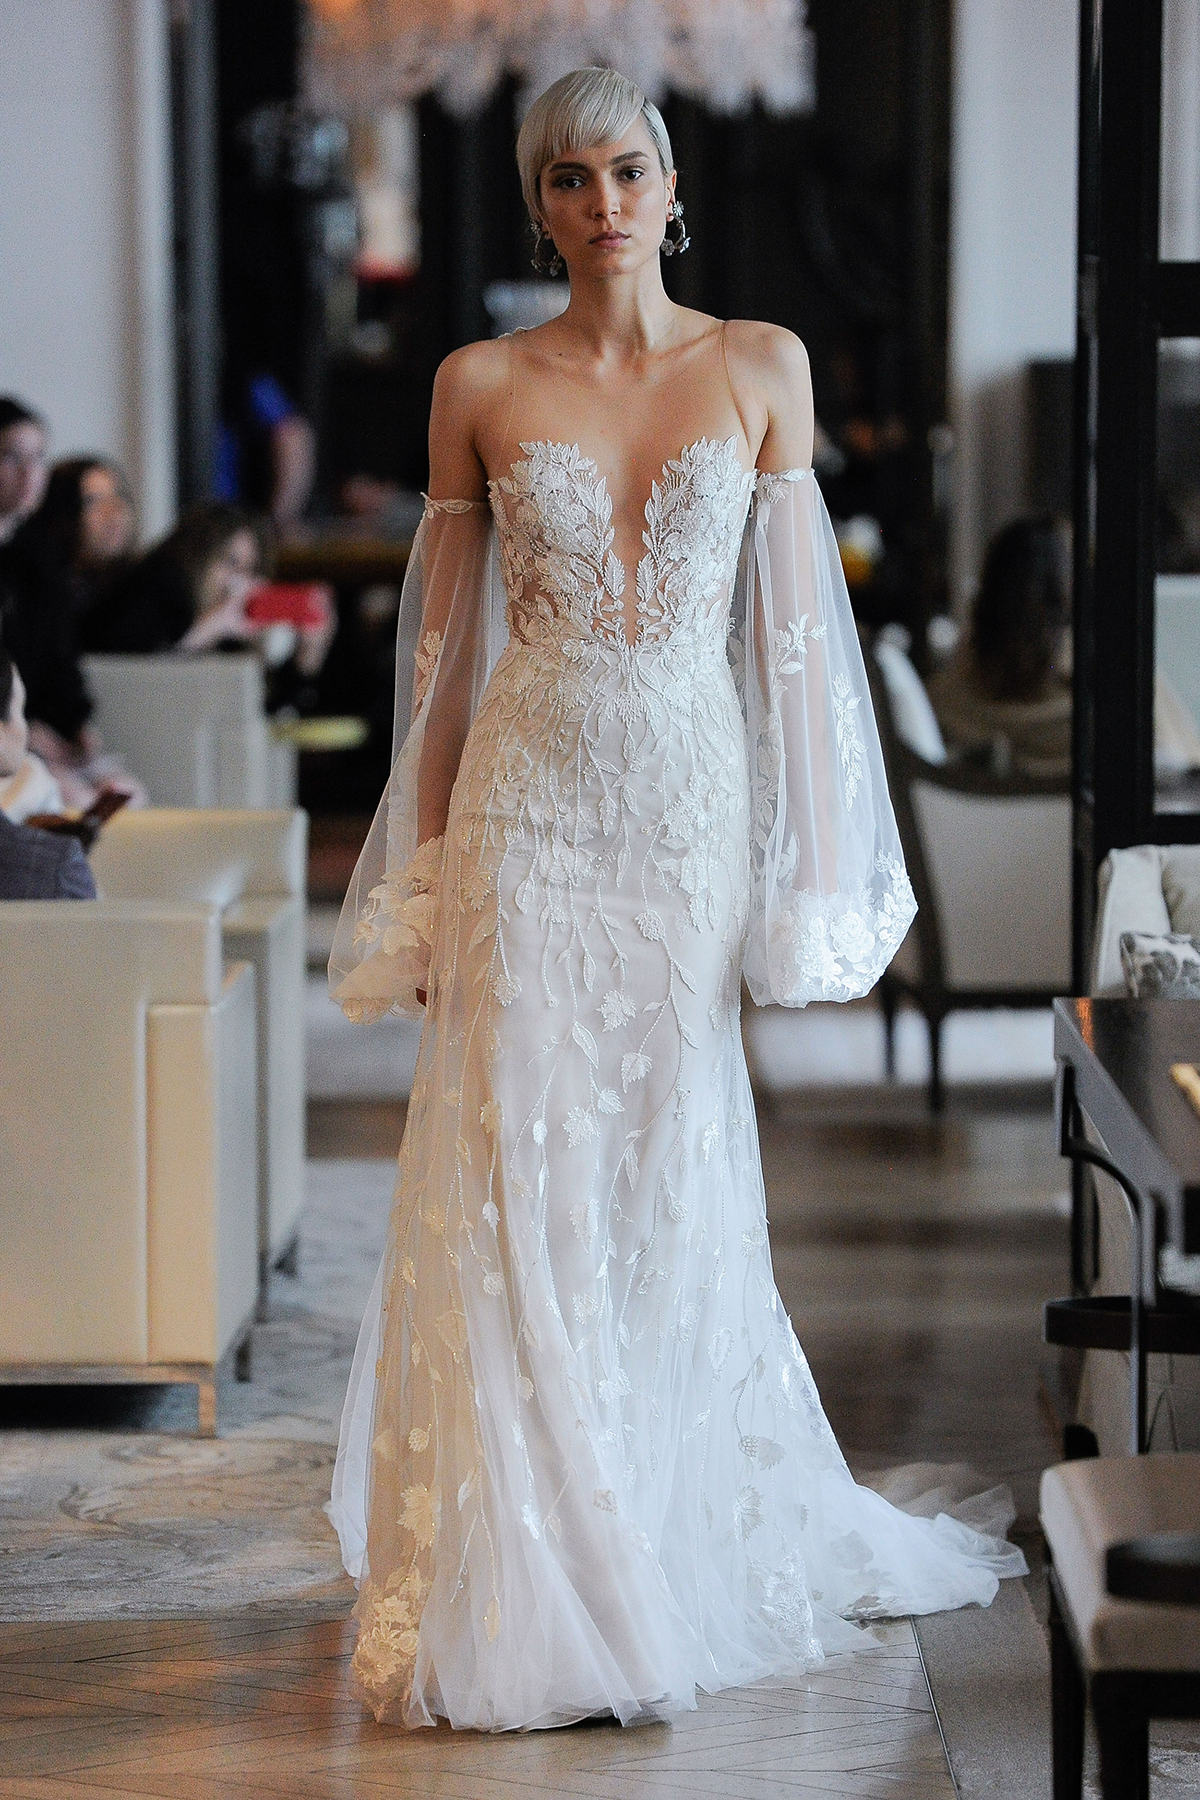 Nala gown by Ines di Santo.  Photography courtesy of First View.